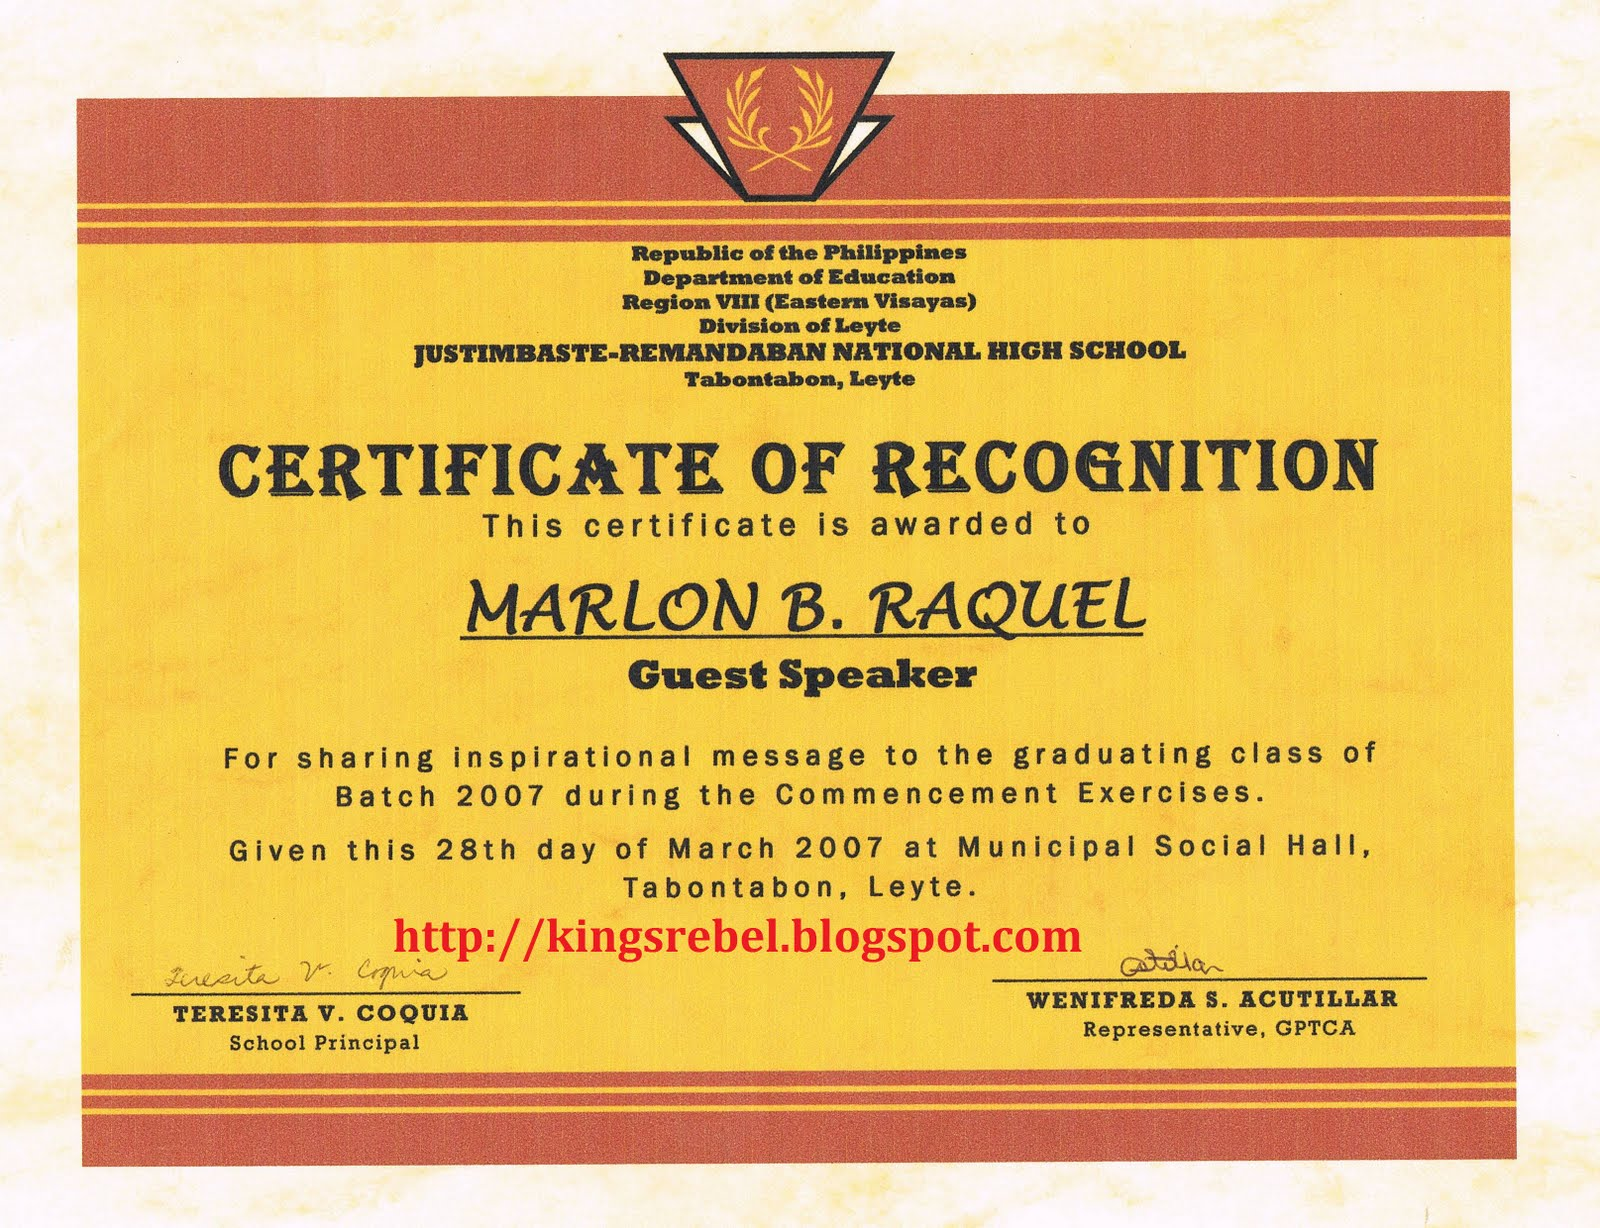 Examples of Certificate of Appreciation http://kingsrebel.blogspot.com/2011/02/example-of-certificate-of-appreciation_21.html